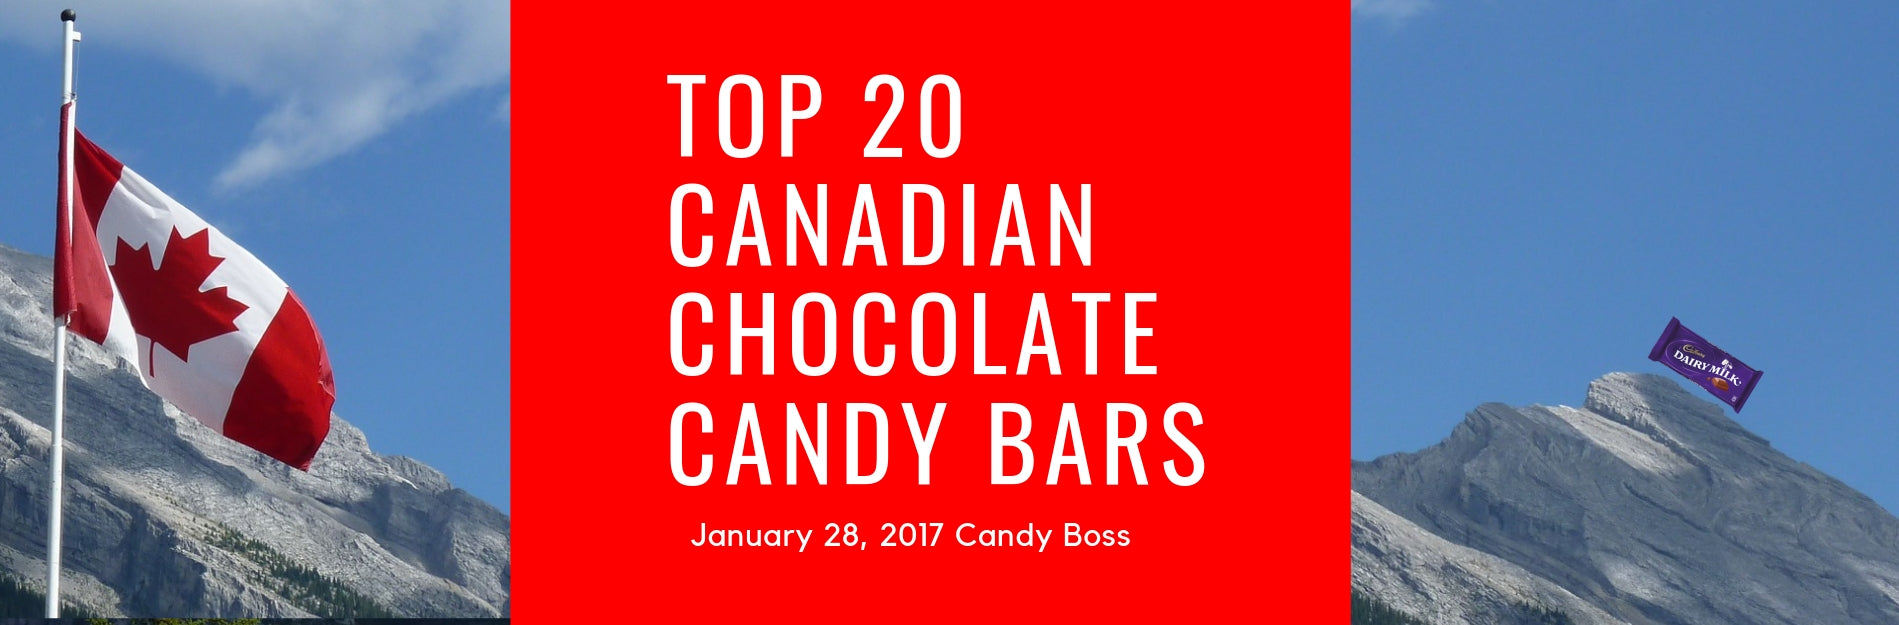 Top 20 Canadian Chocolate Candy Bars | Candy Funhouse